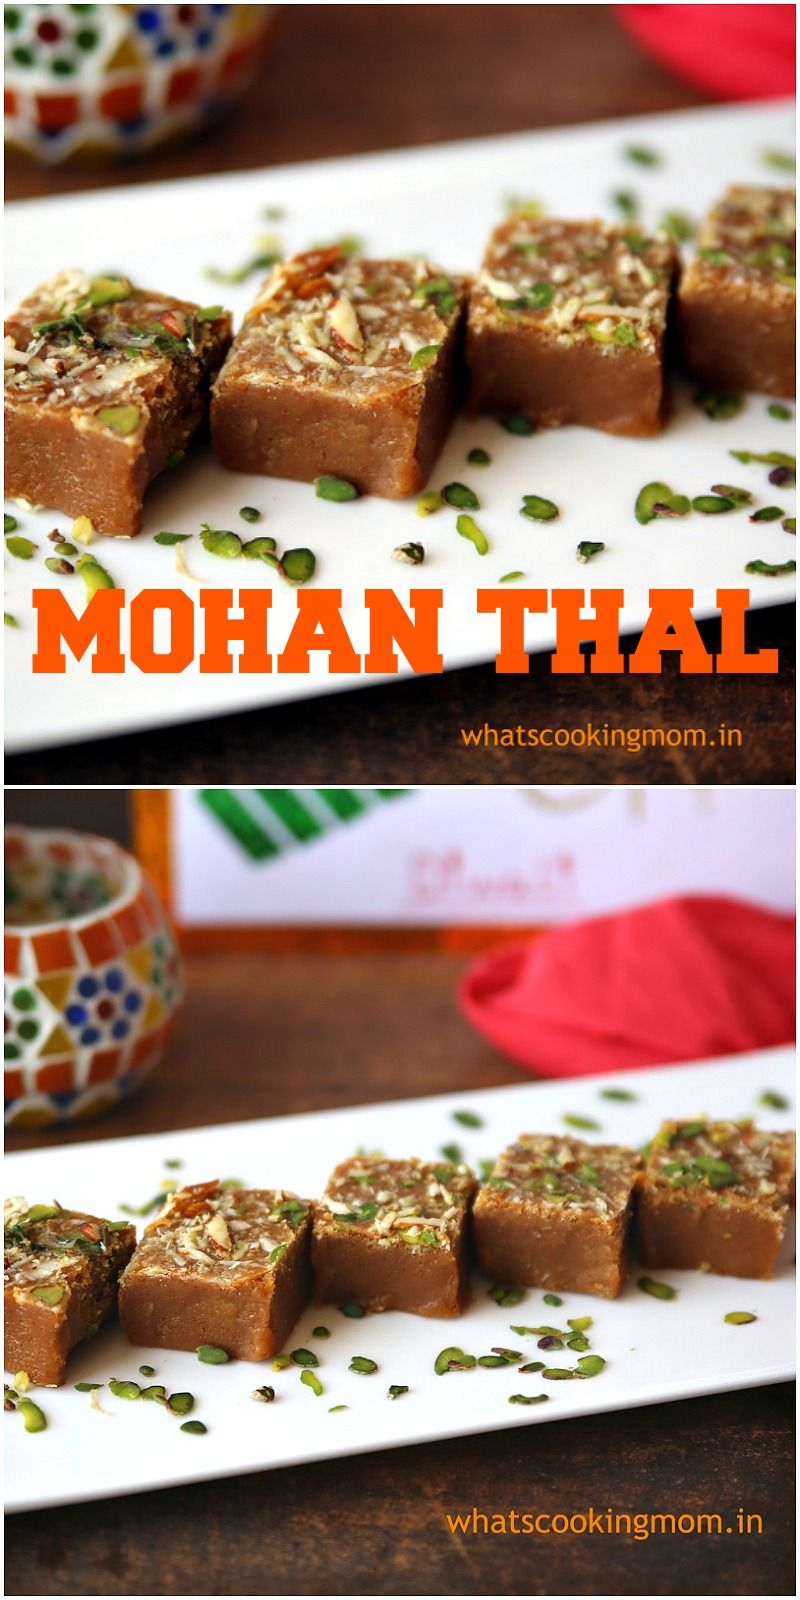 Mohanthal recipe gujarati video how to learn